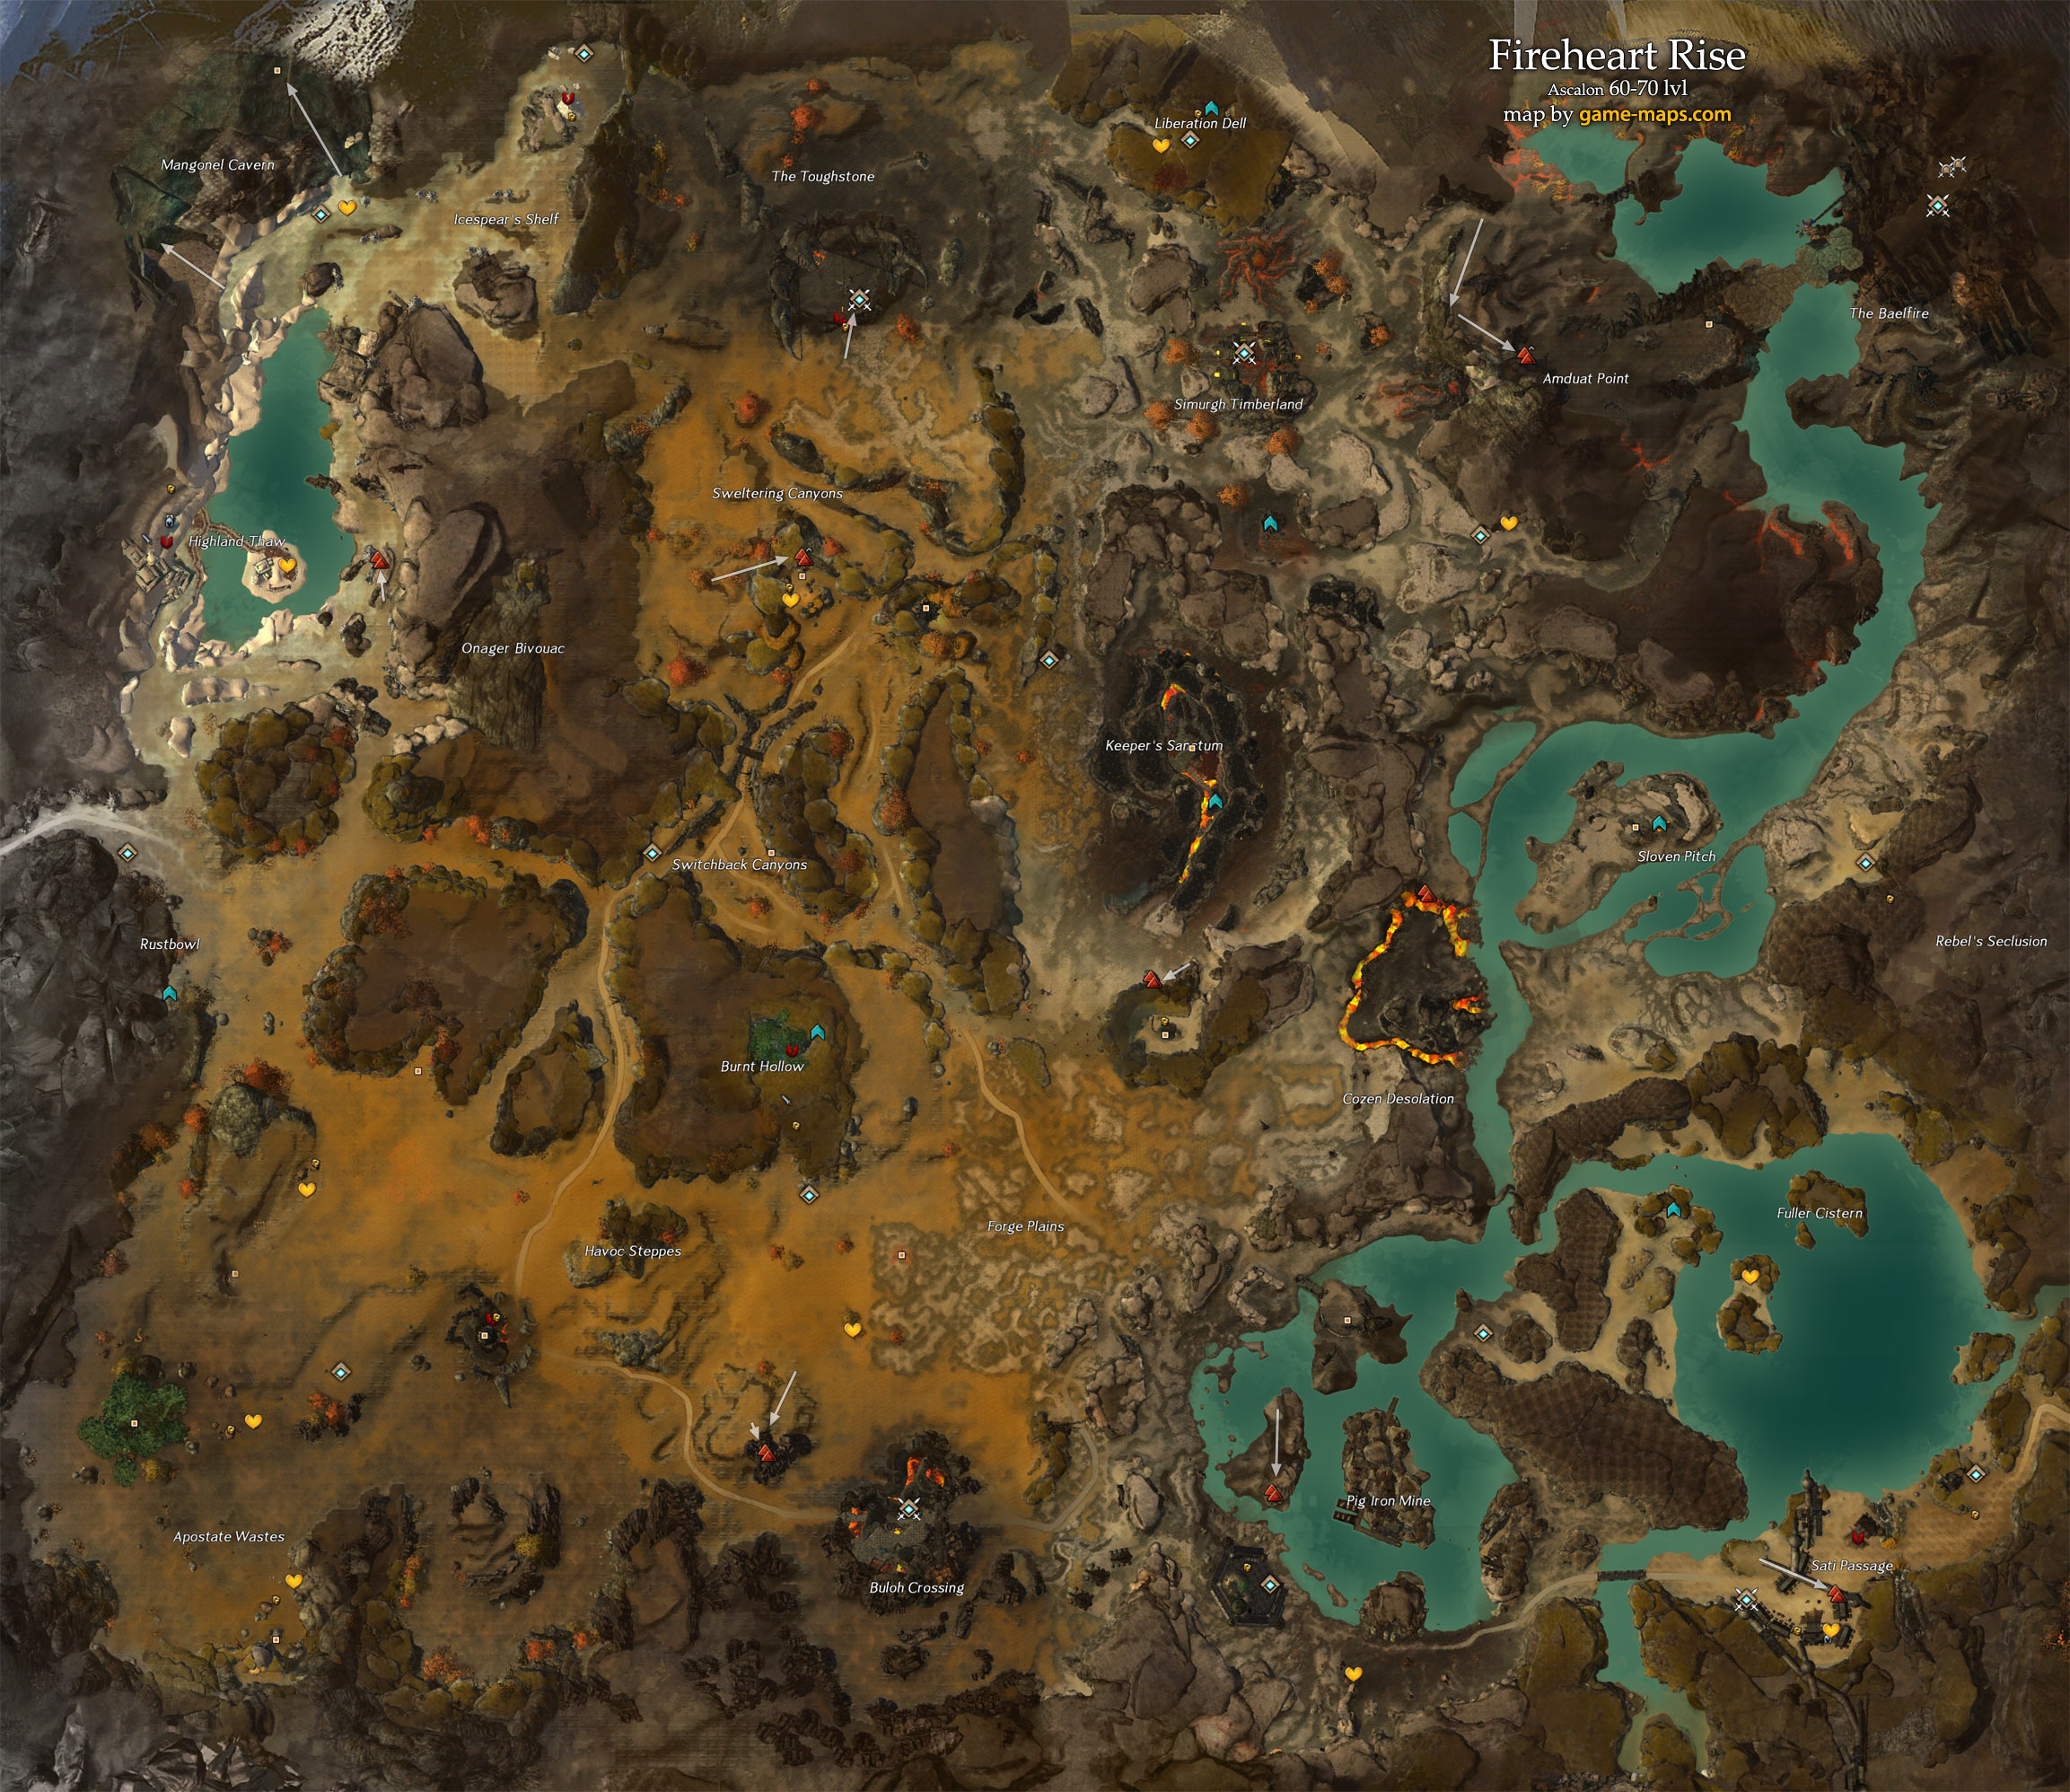 Fireheart rise map guild wars 2 map of fireheart rise map 60 70 lvl ascalon guild wars 2 gumiabroncs Image collections